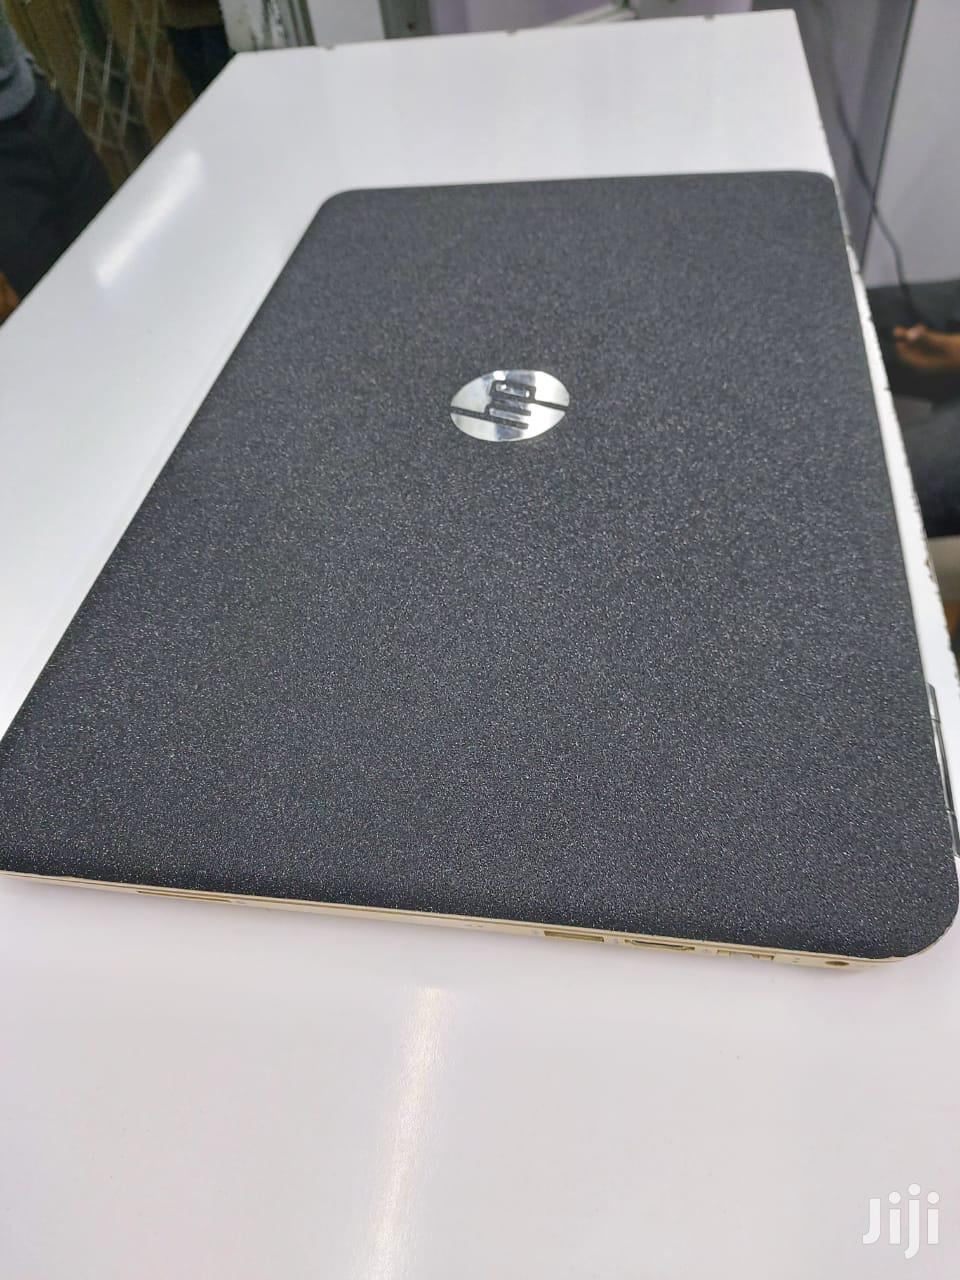 Laptop HP Pavilion X360 15t 8GB Intel Core I7 HDD 1T | Laptops & Computers for sale in Nairobi Central, Nairobi, Kenya